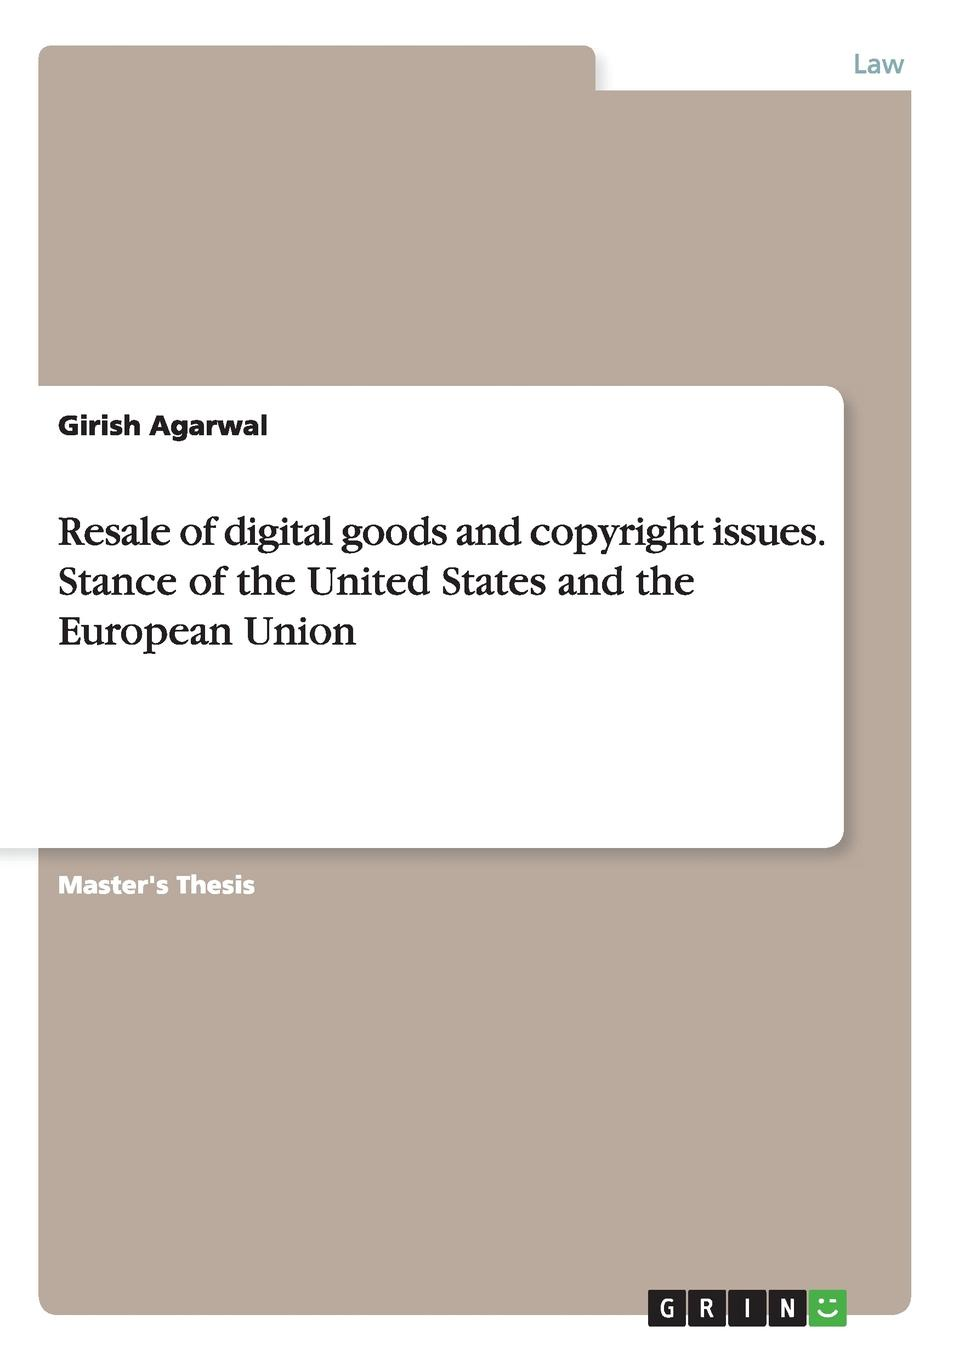 Girish Agarwal Resale of digital goods and copyright issues. Stance of the United States and the European Union work the